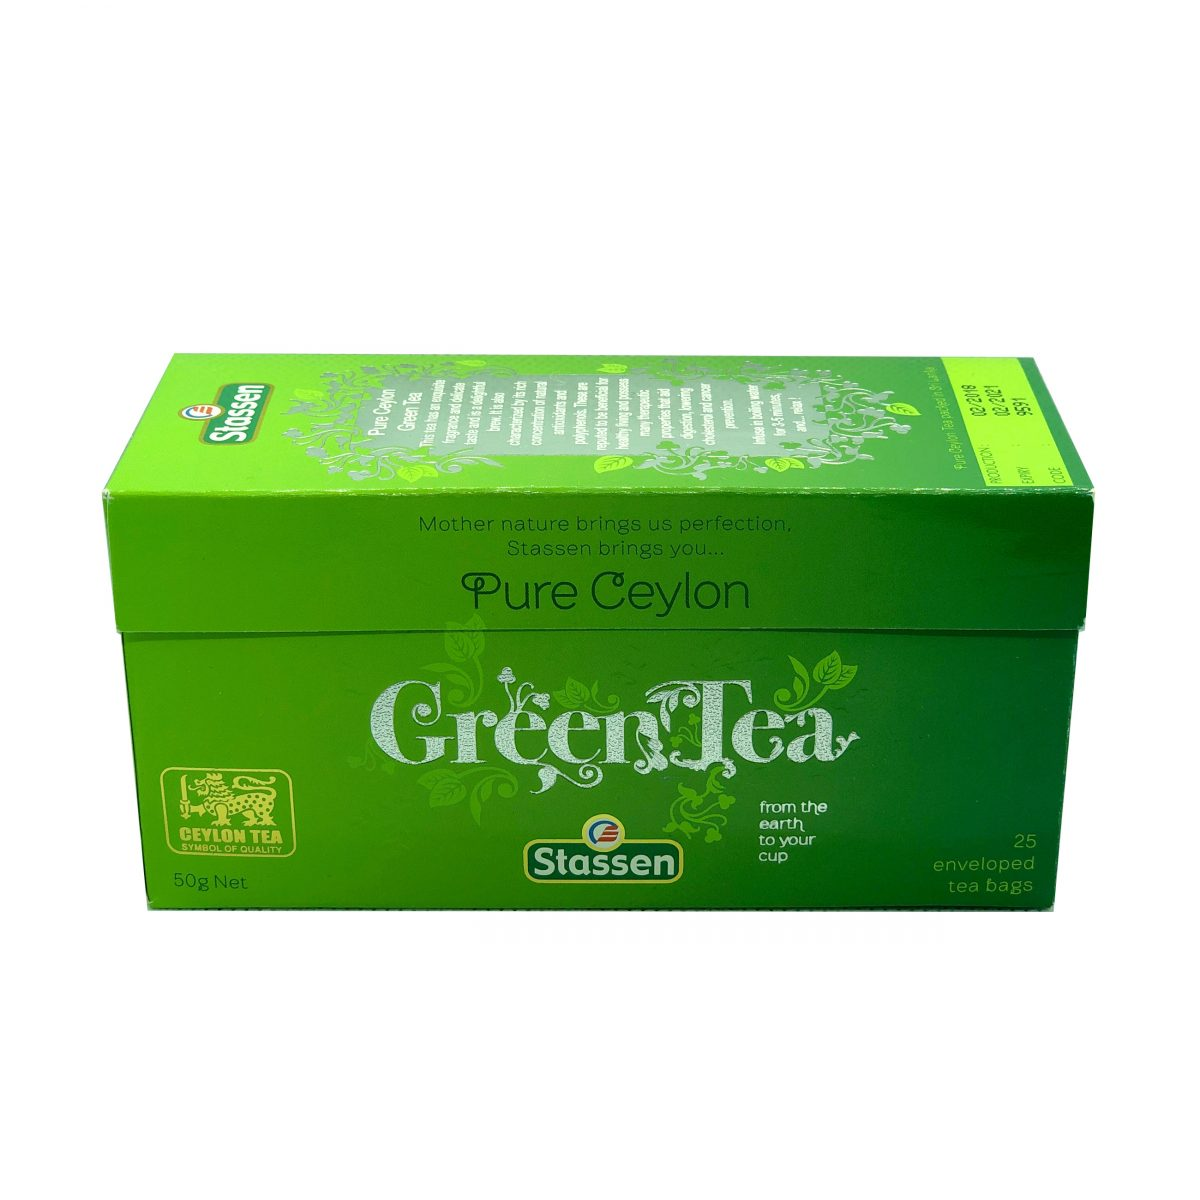 Pure ceylon green tea, Stassen